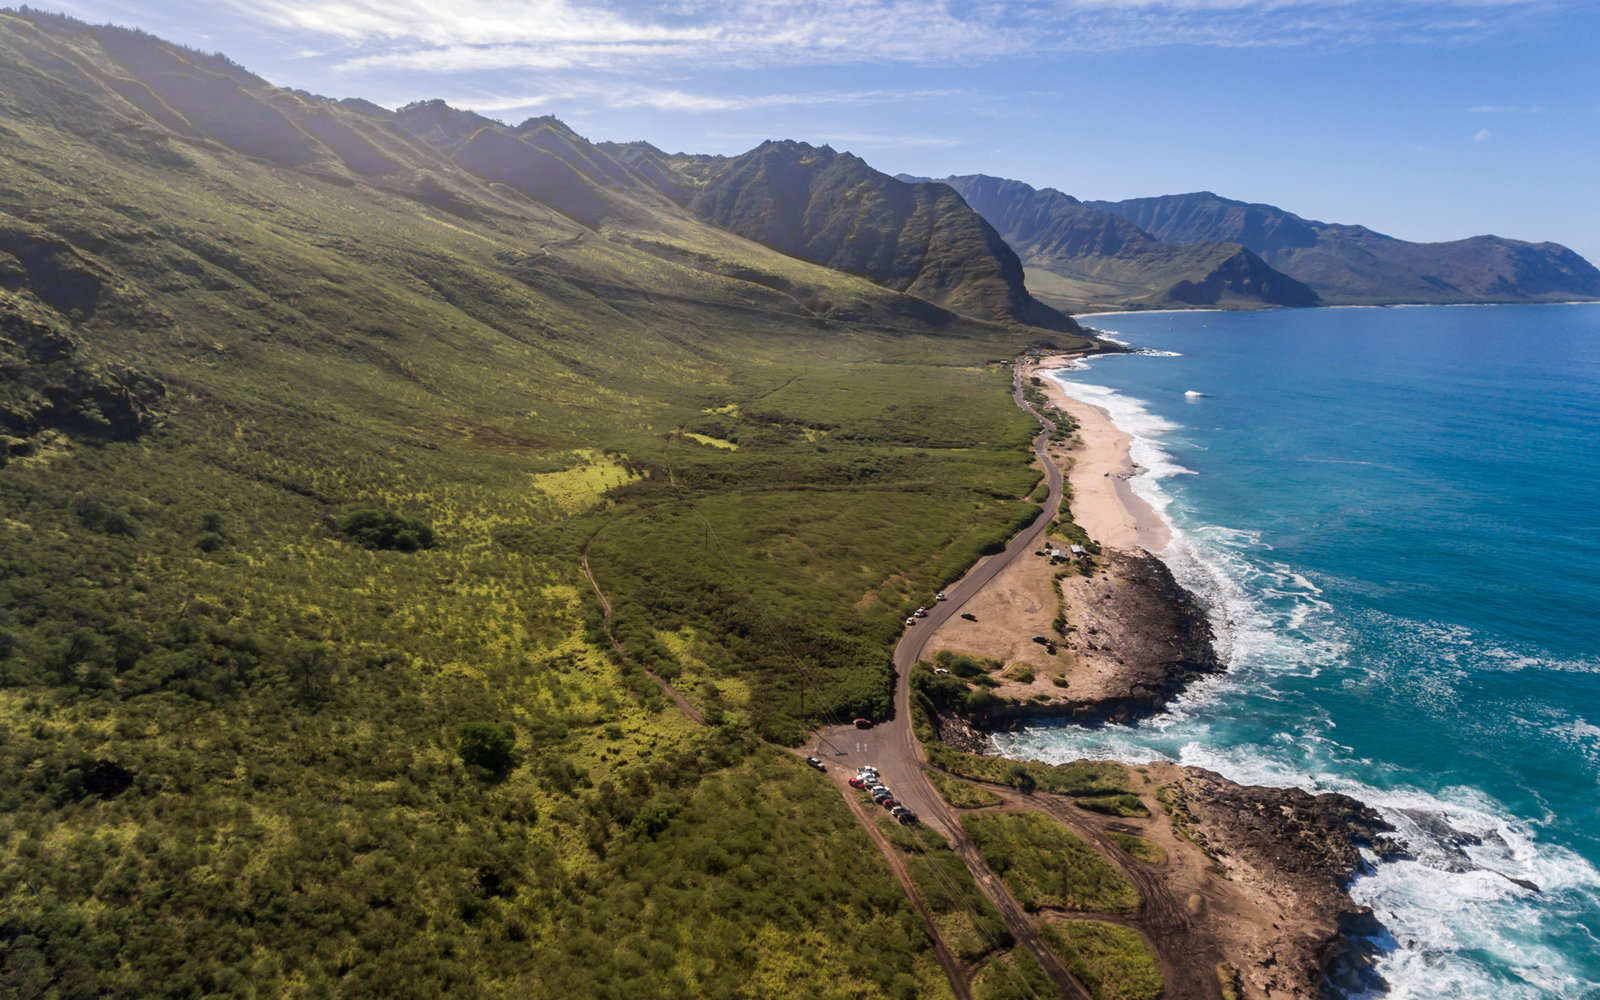 Cheap Flights to Hawaii Are Back, From More Than 30 Cities in North America